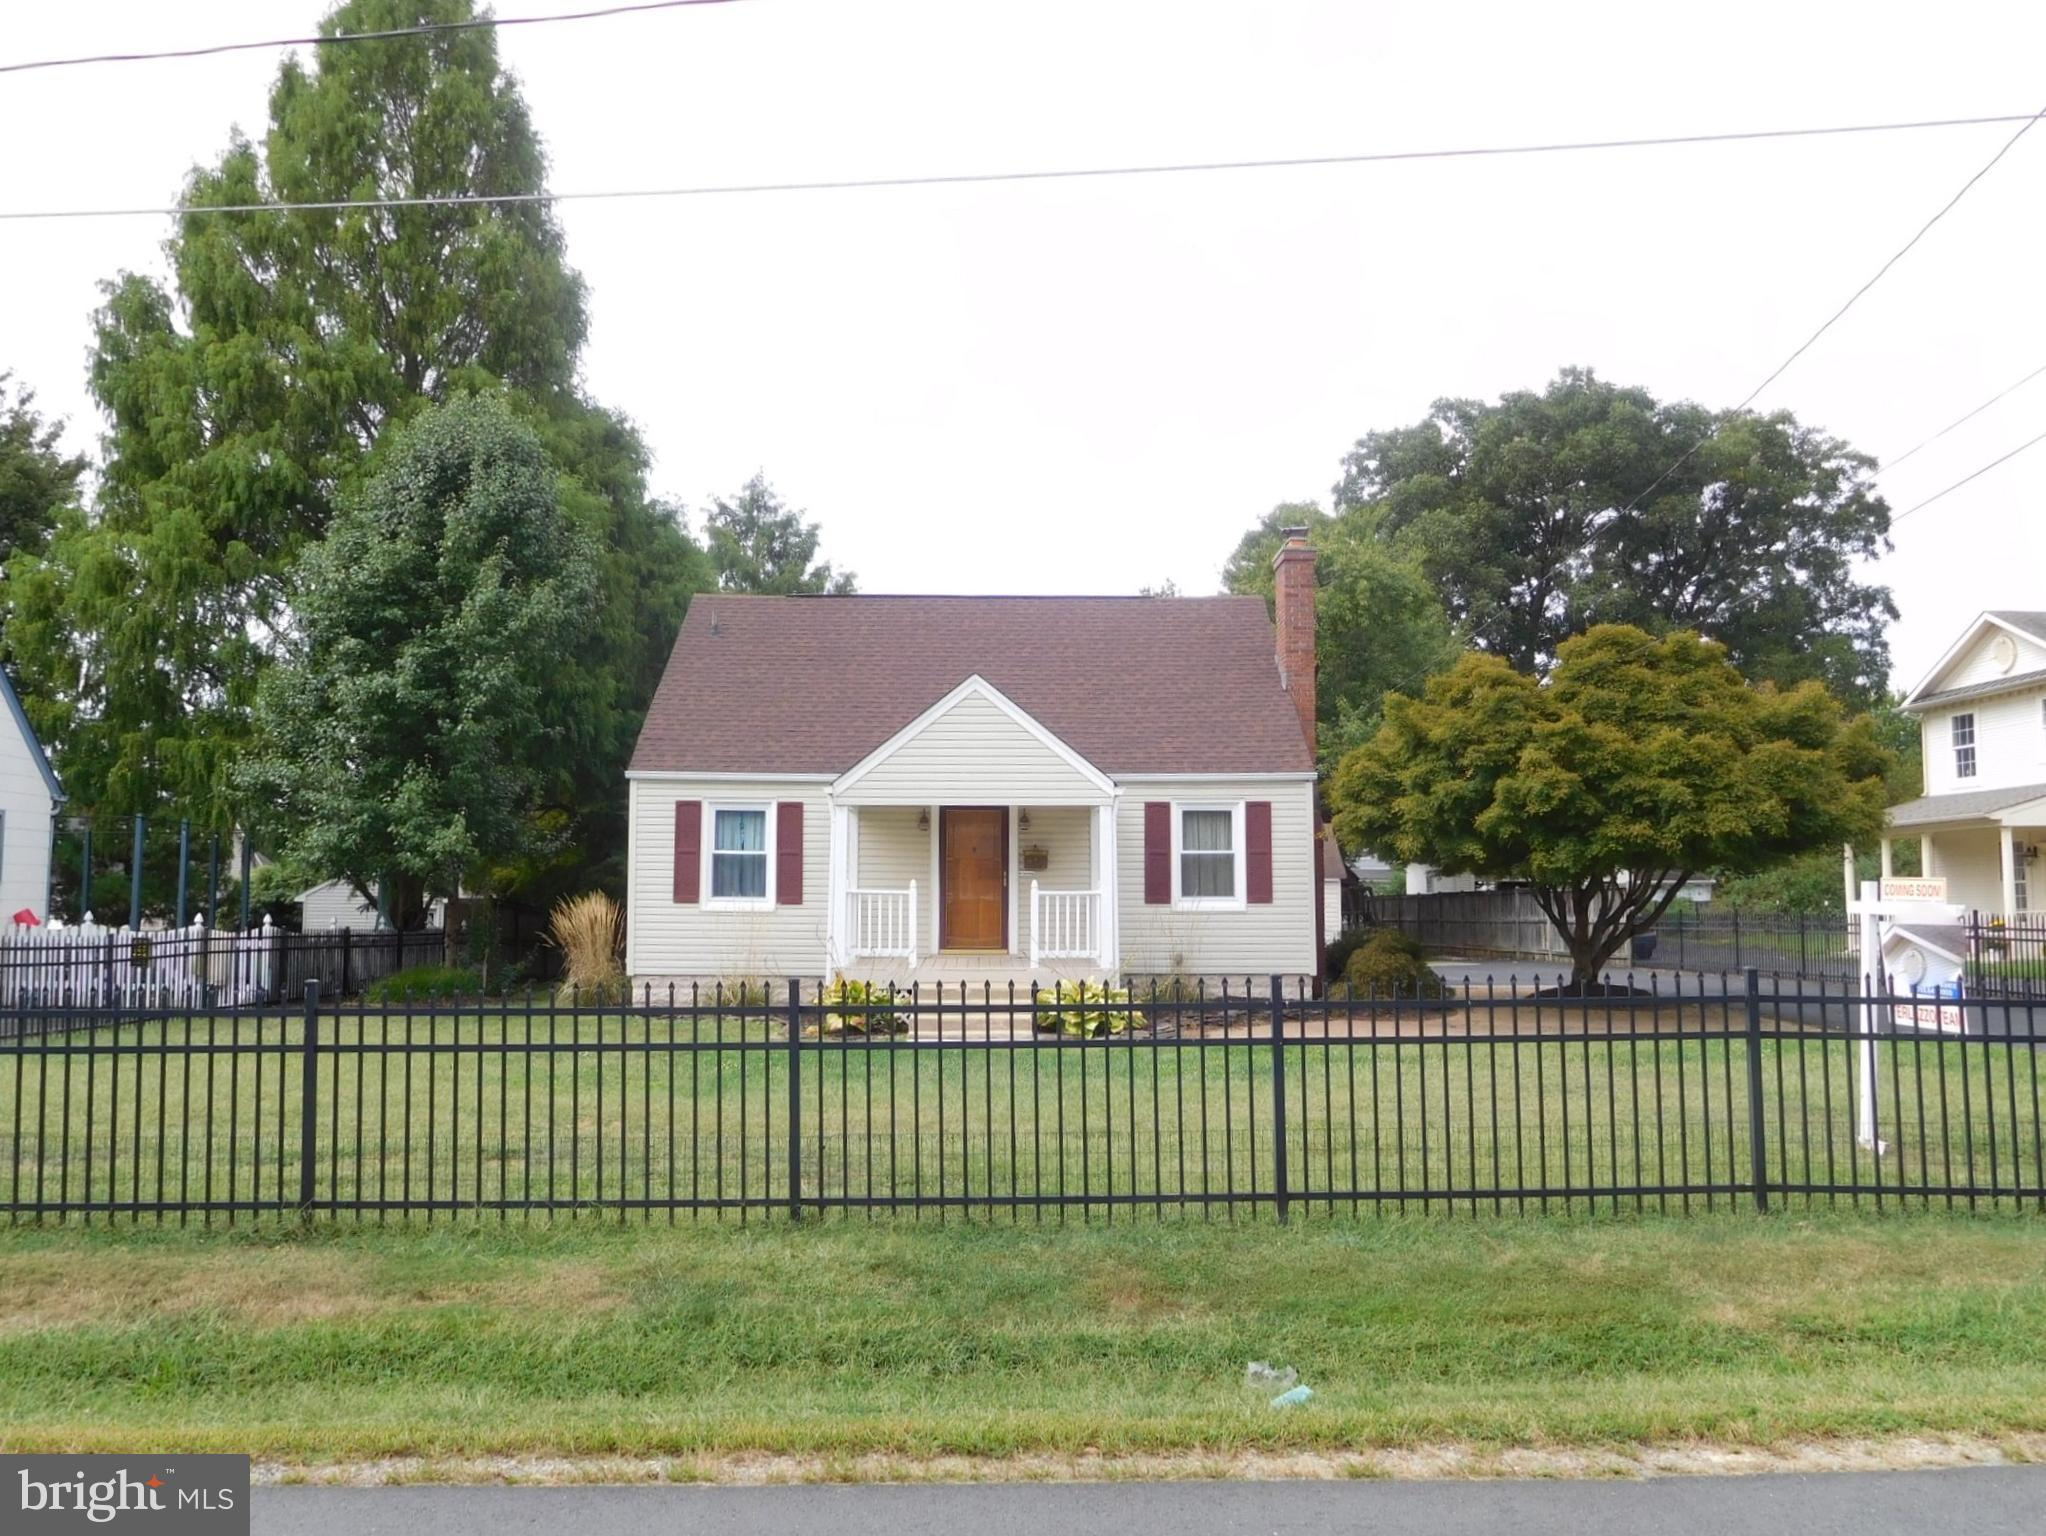 Check out this nicely updated Cape Cod, conveniently located just off of Occoquan Road in Woodbridge